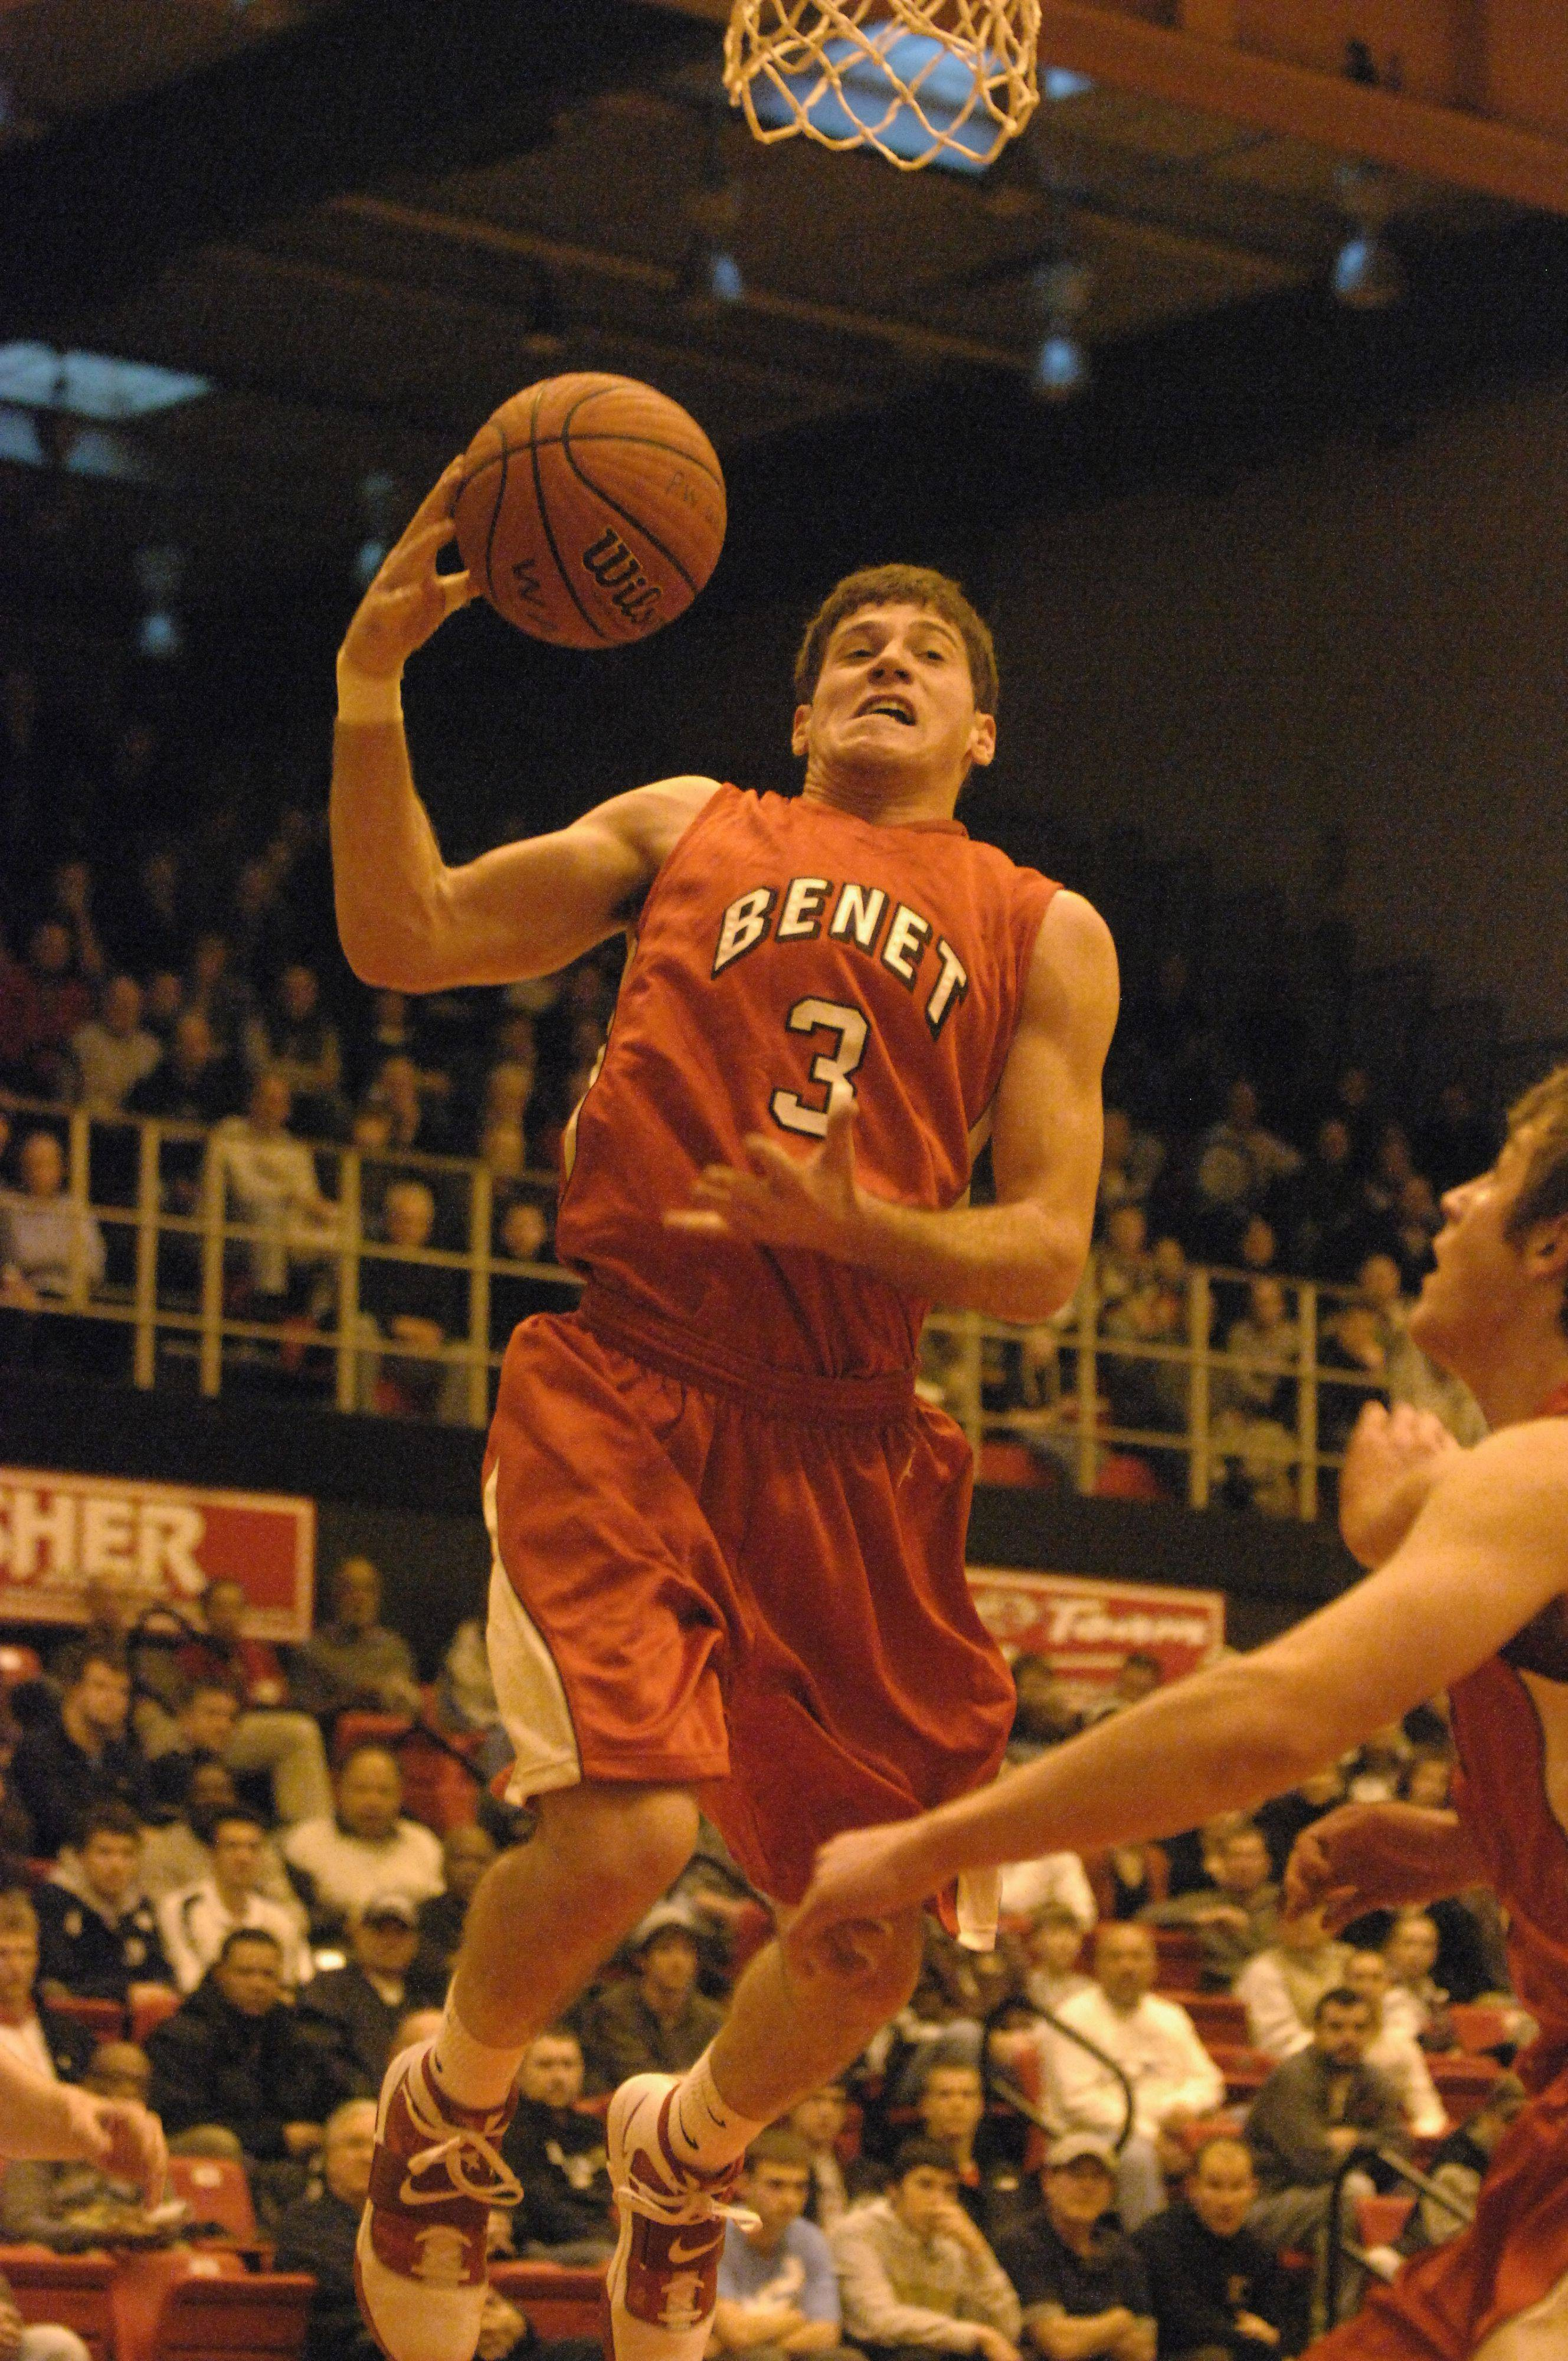 Images of Benet vs. New Trier boys basketball